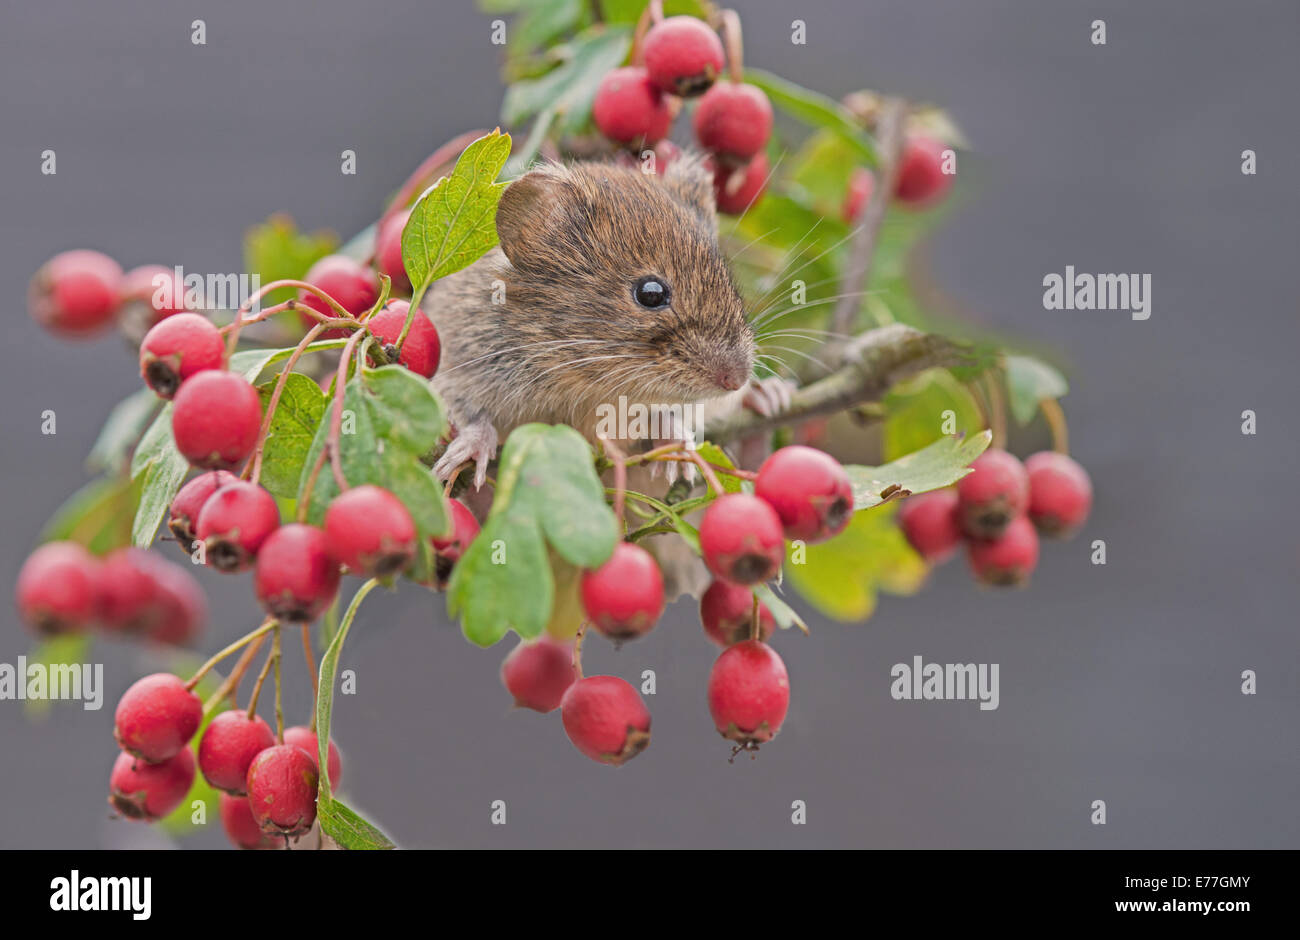 Common Redbacked or Bank Vole-Clethrionomys glareolus, on Hawthorn-Cratagus. - Stock Image